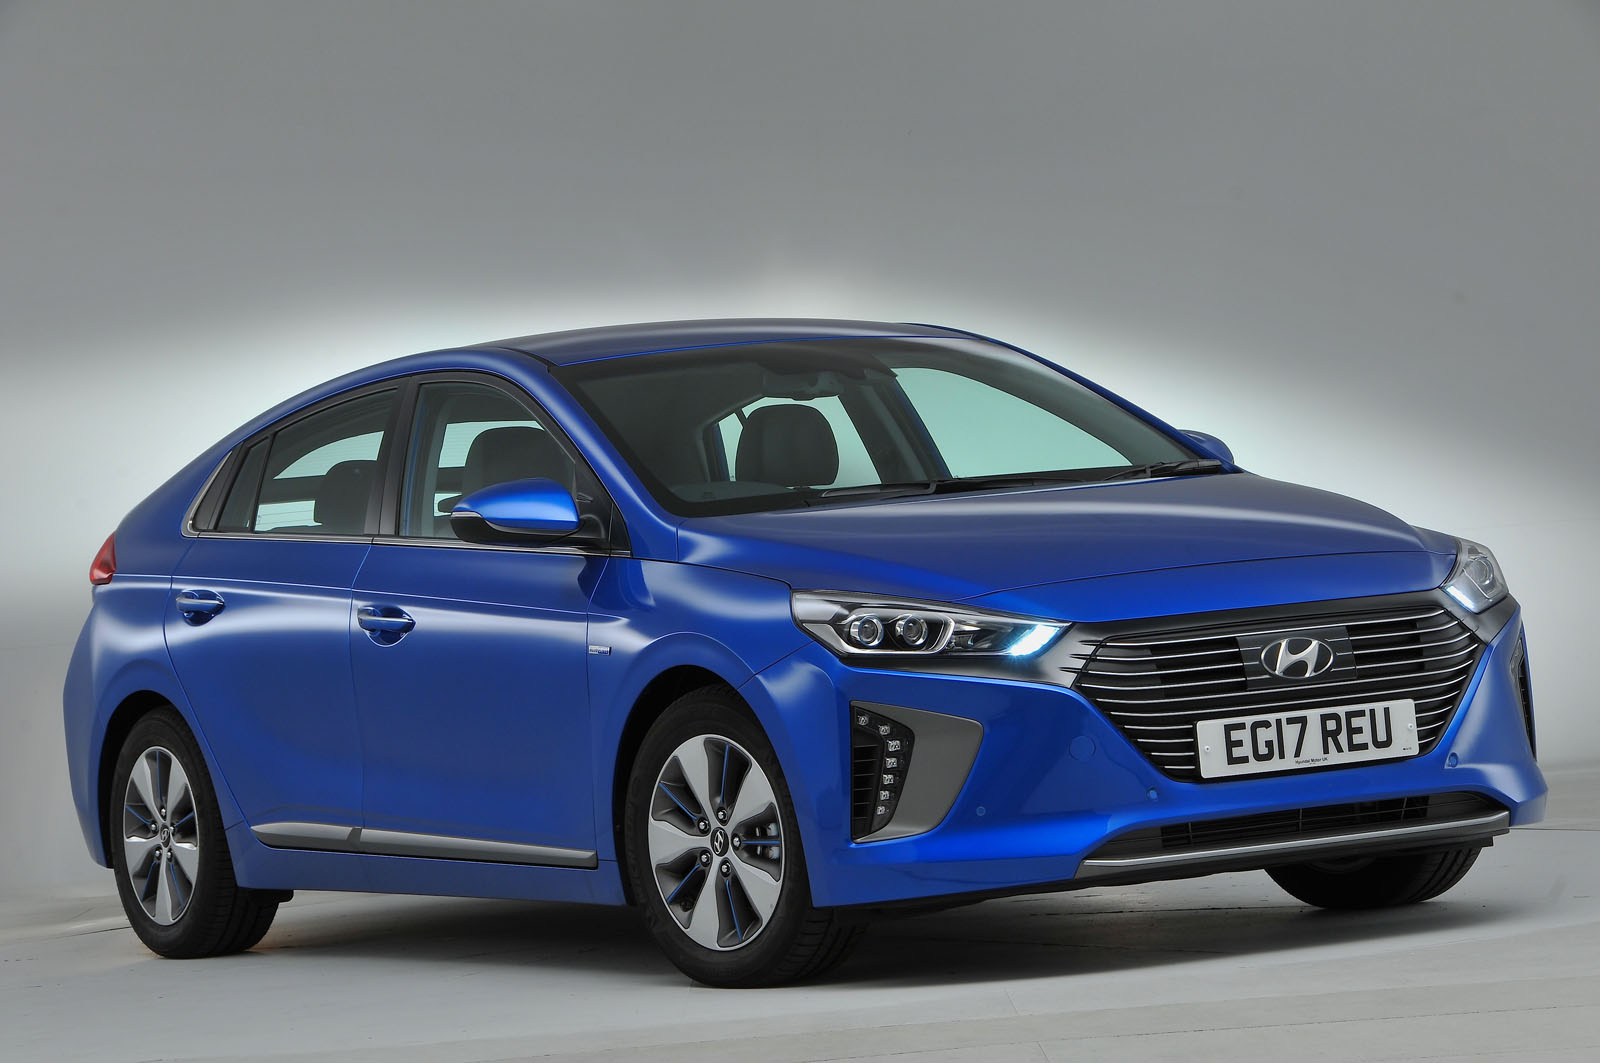 The ioniq plug in is arguably the most complete car of its three powertrain family appearing best suited to this transition period from combustion engine